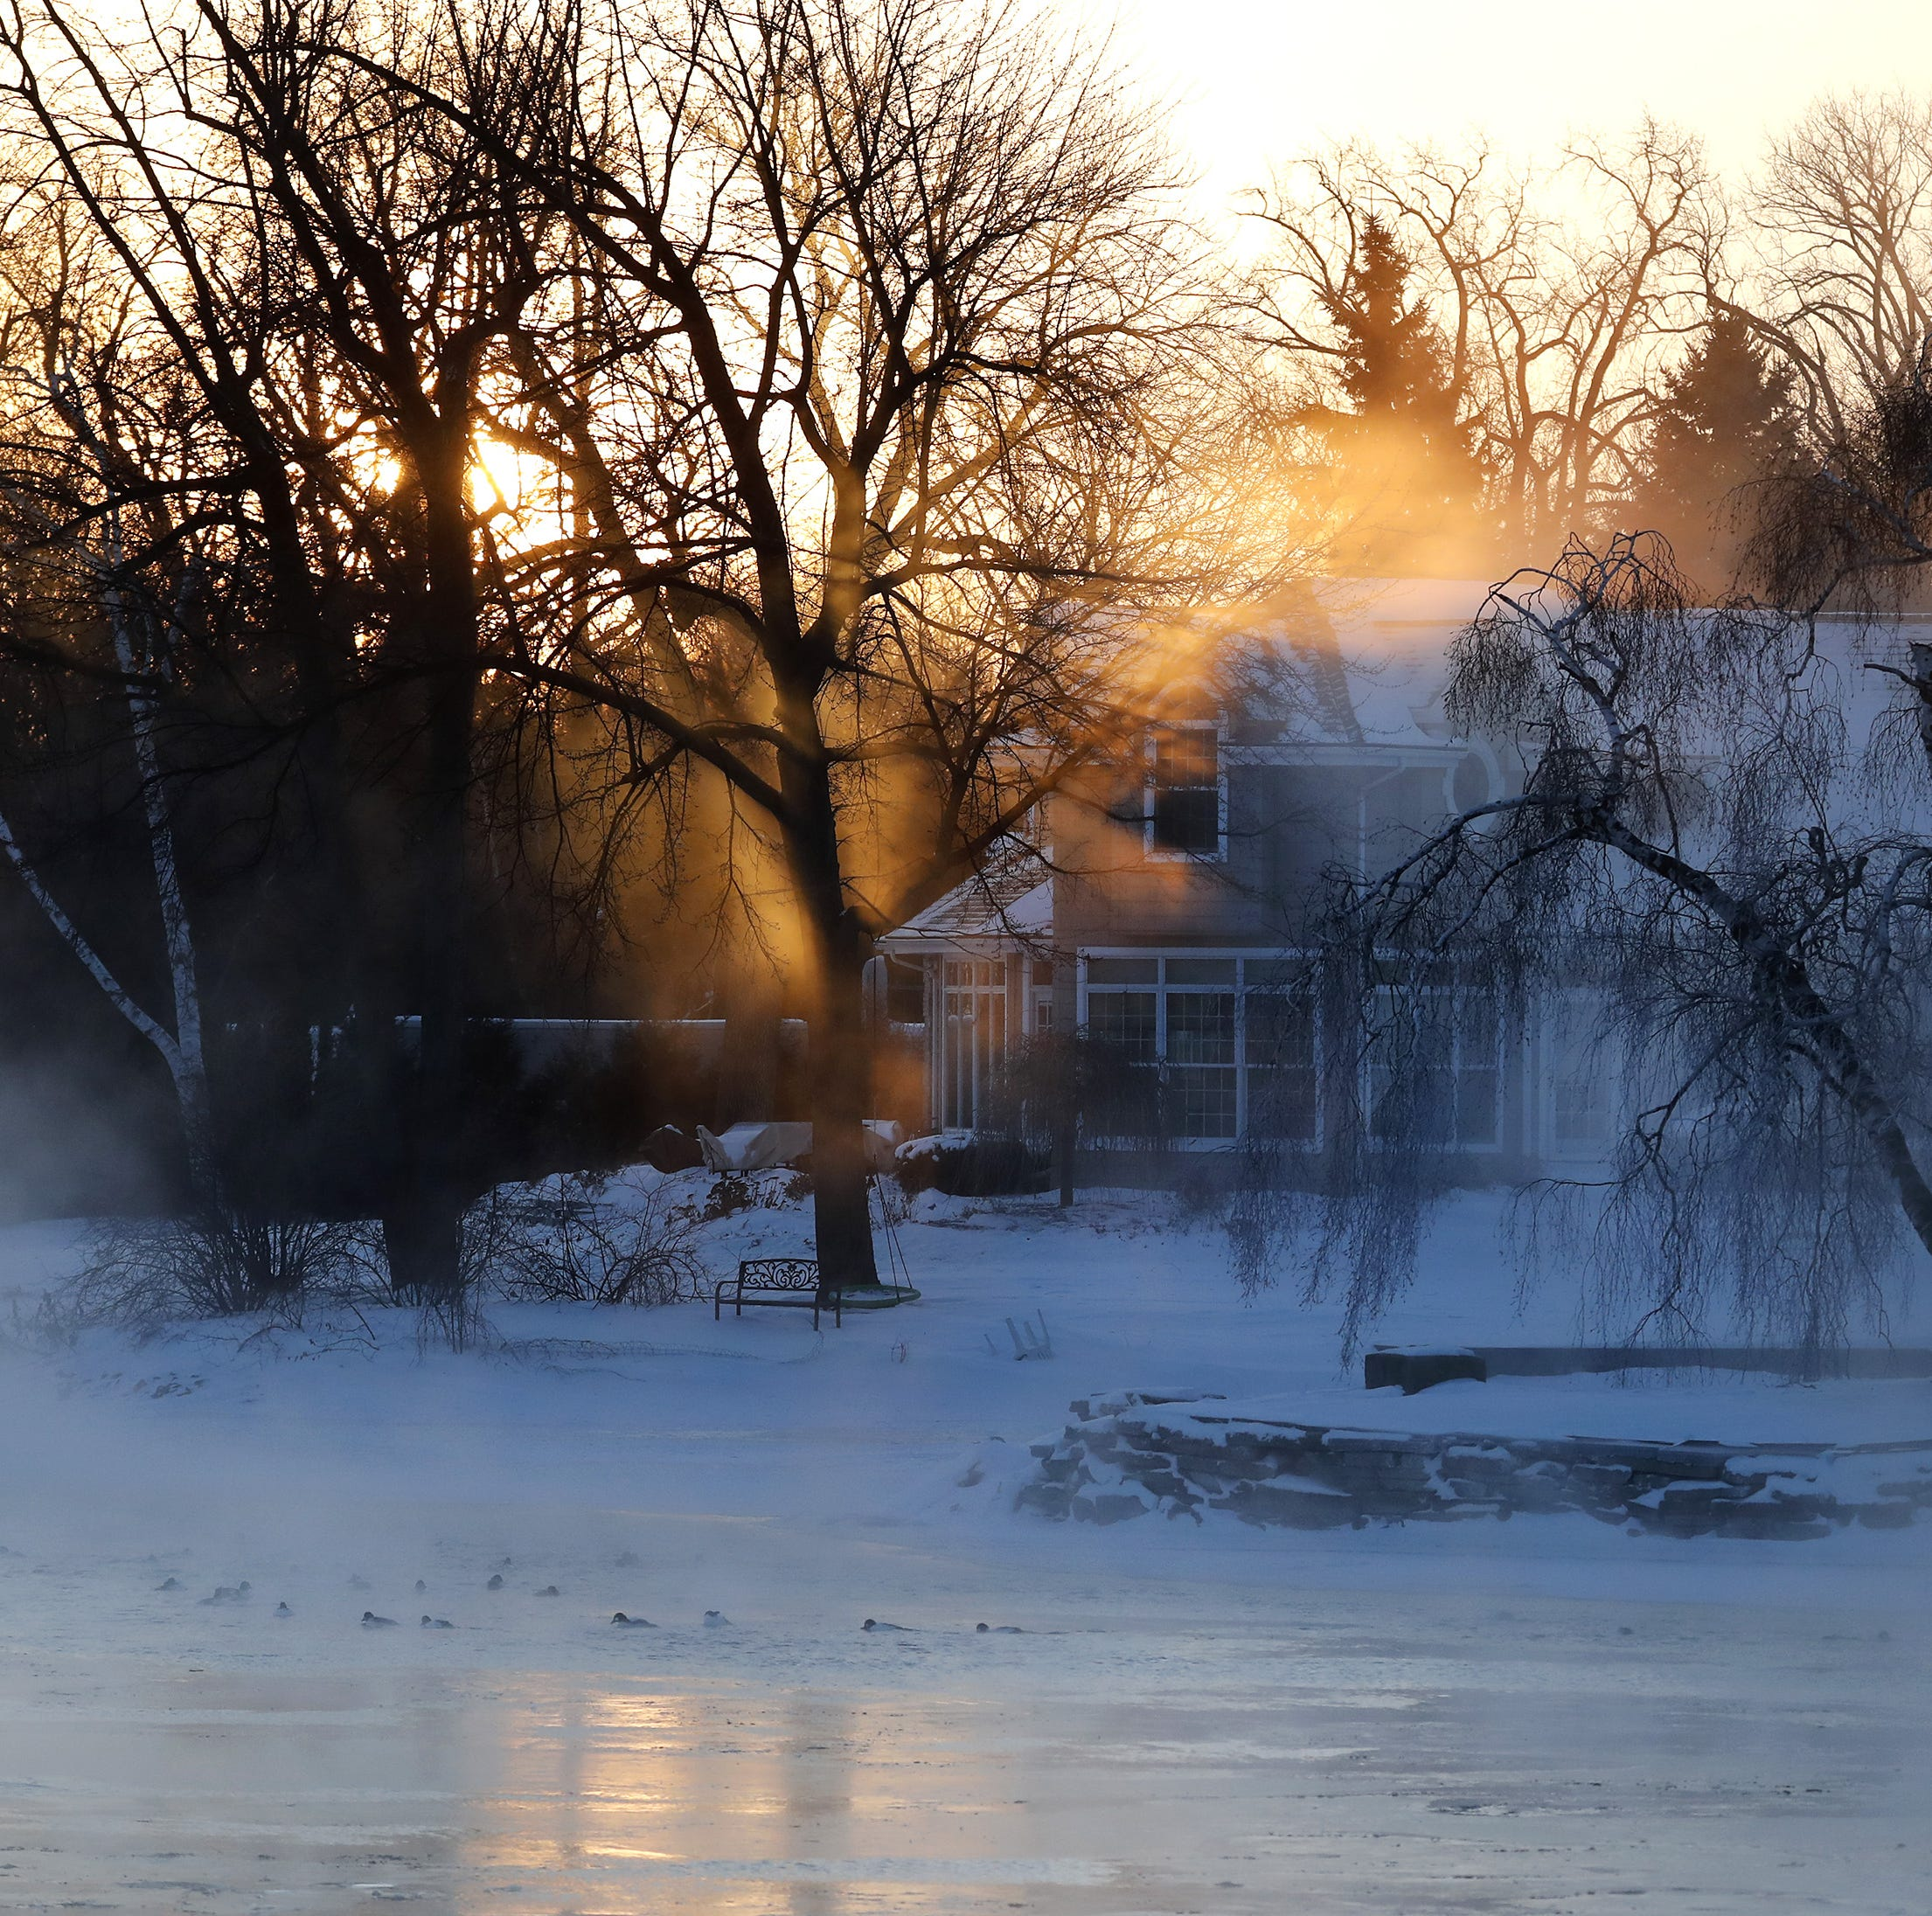 What to expect during the final day of the polar vortex in Wisconsin